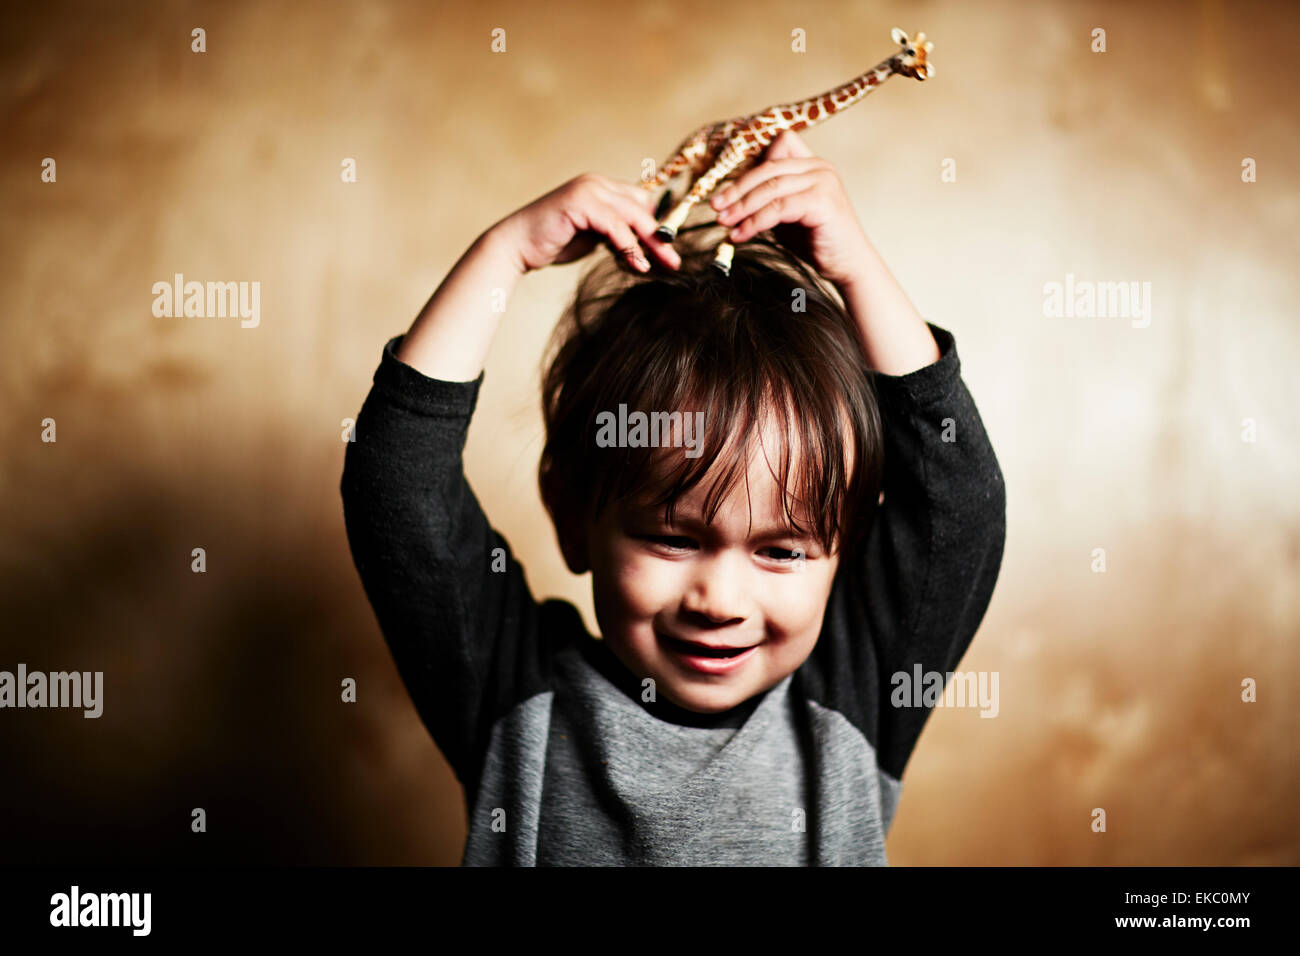 Portrait of cute male toddler holding toy giraffe on his head - Stock Image